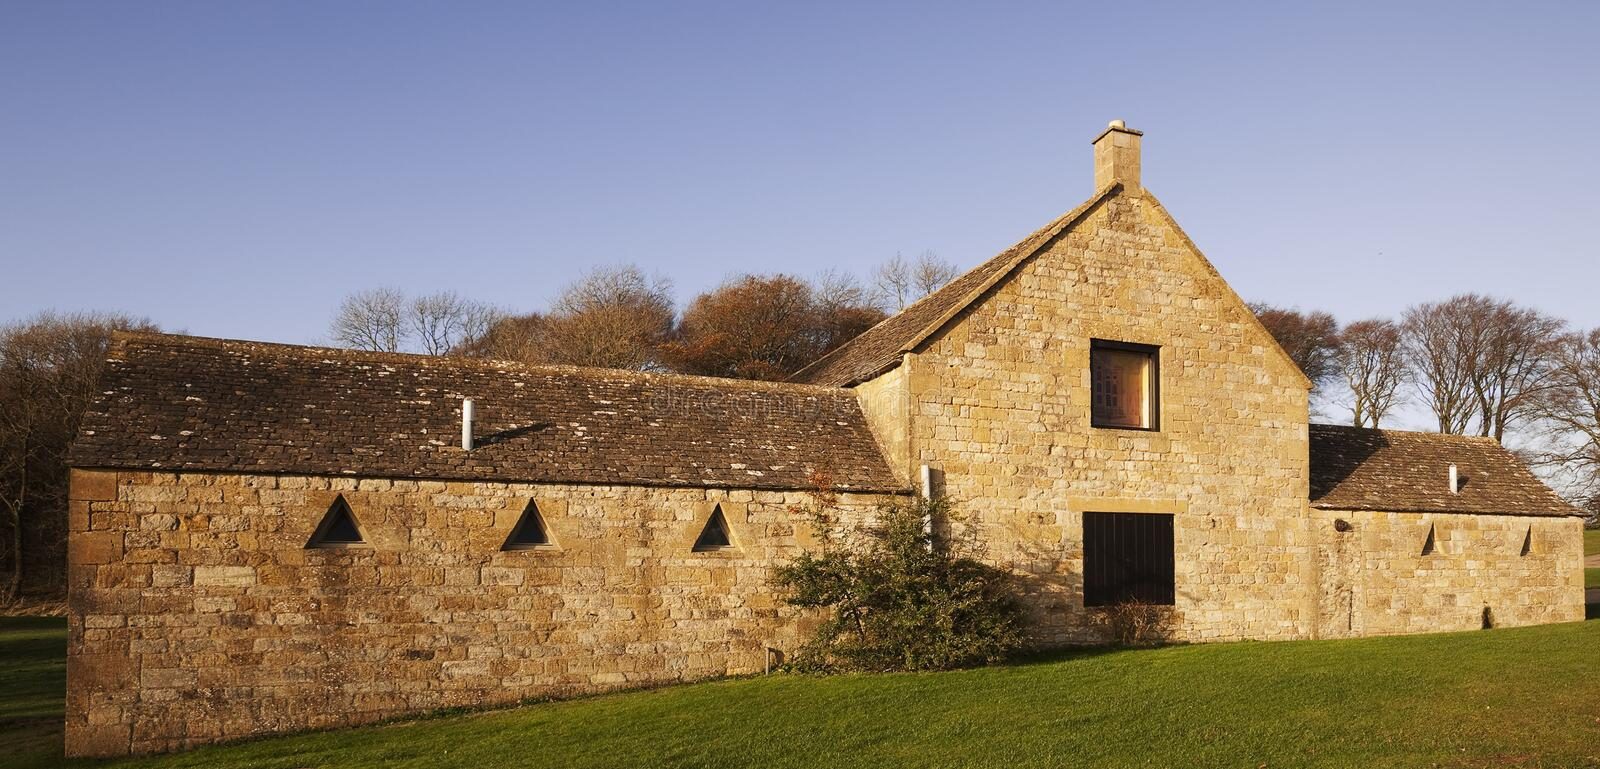 Ferme de Cotswold photo stock